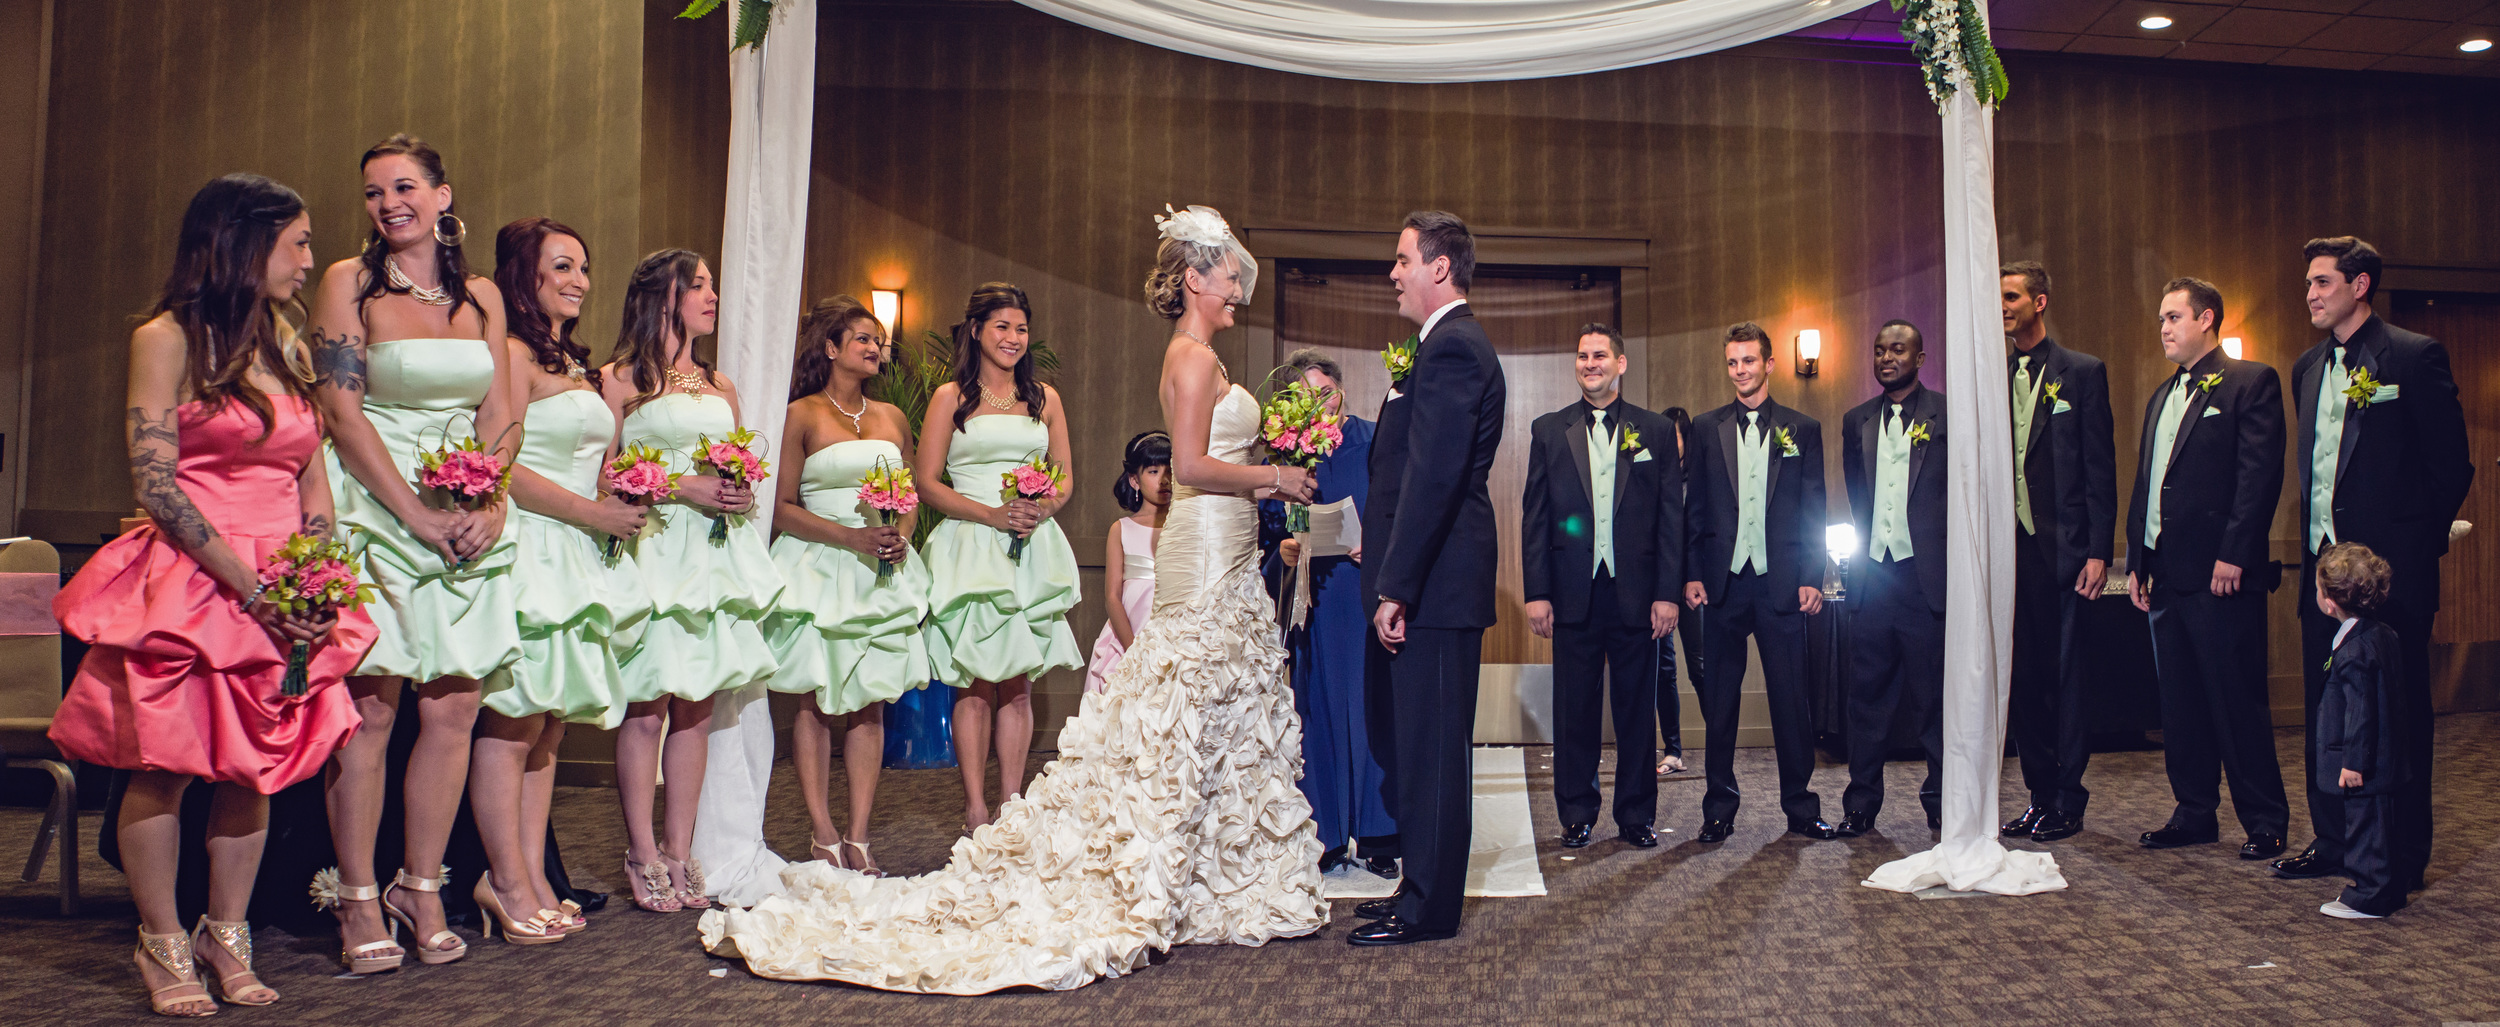 wedding panorama.jpg